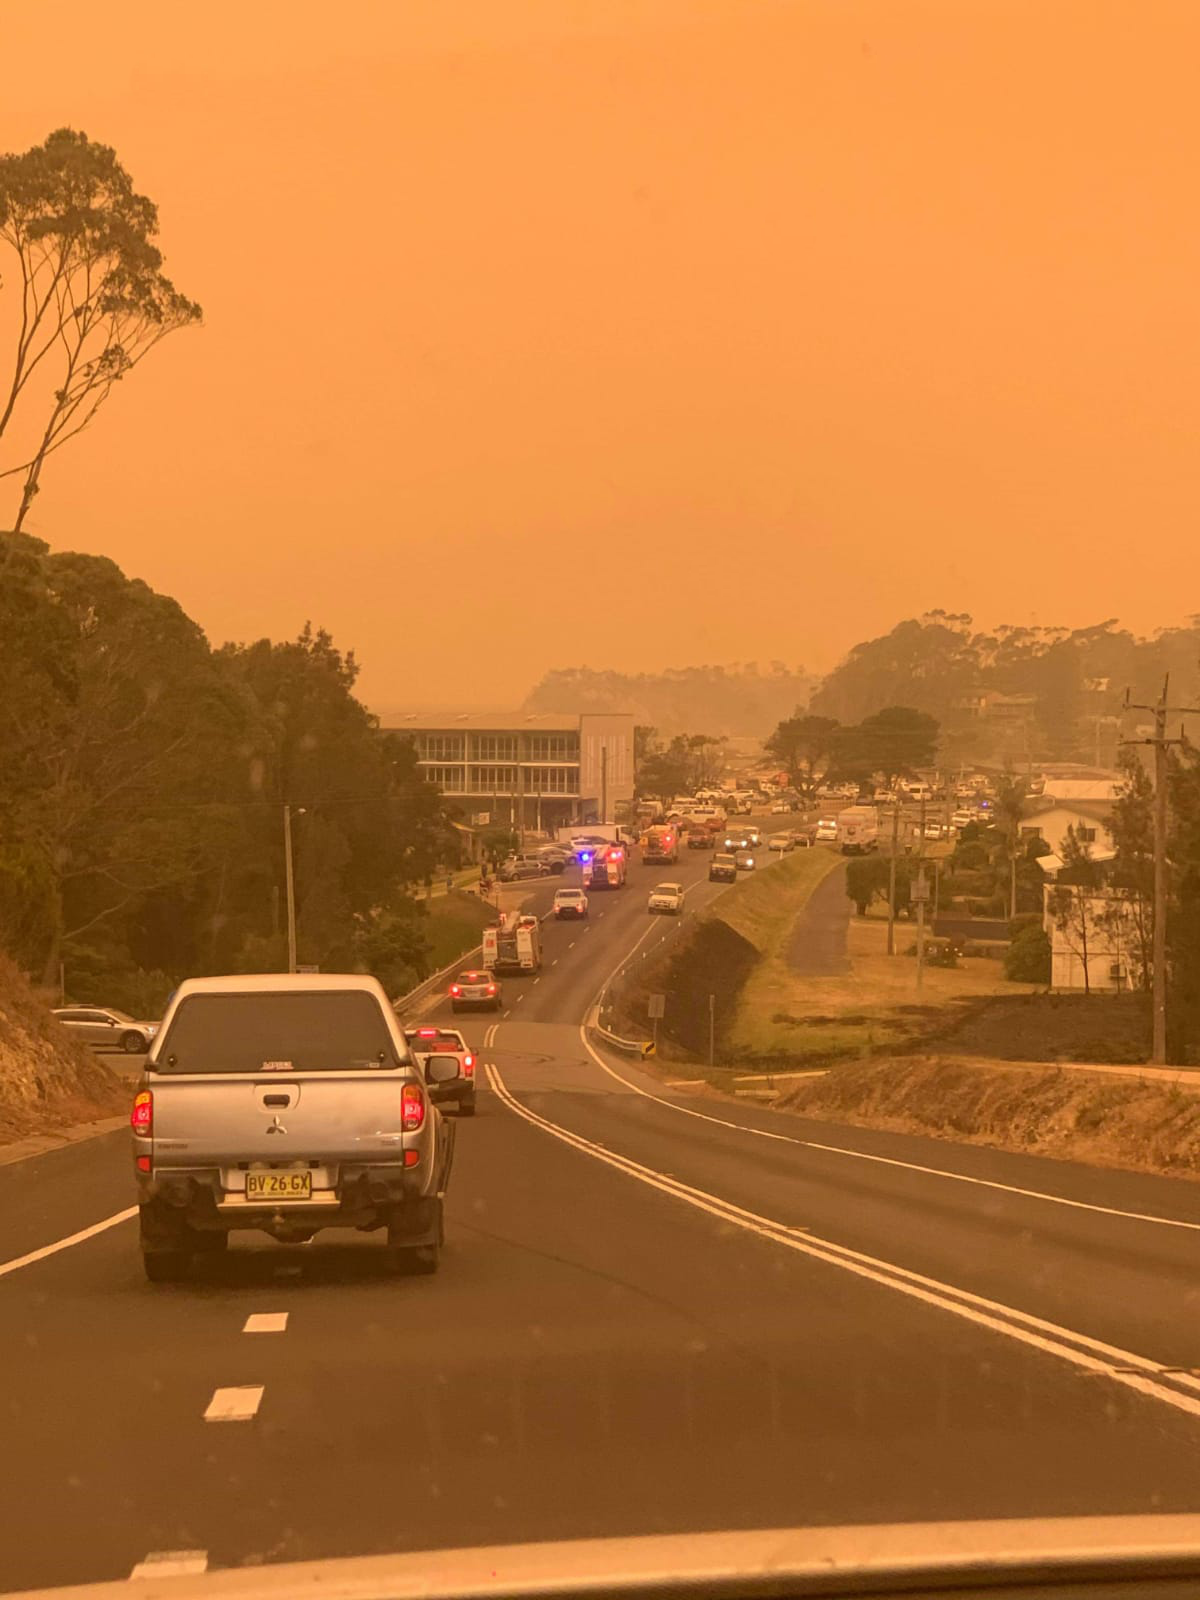 Malua Bay fire fighters rush to the wildfire © Melinda Varcoe